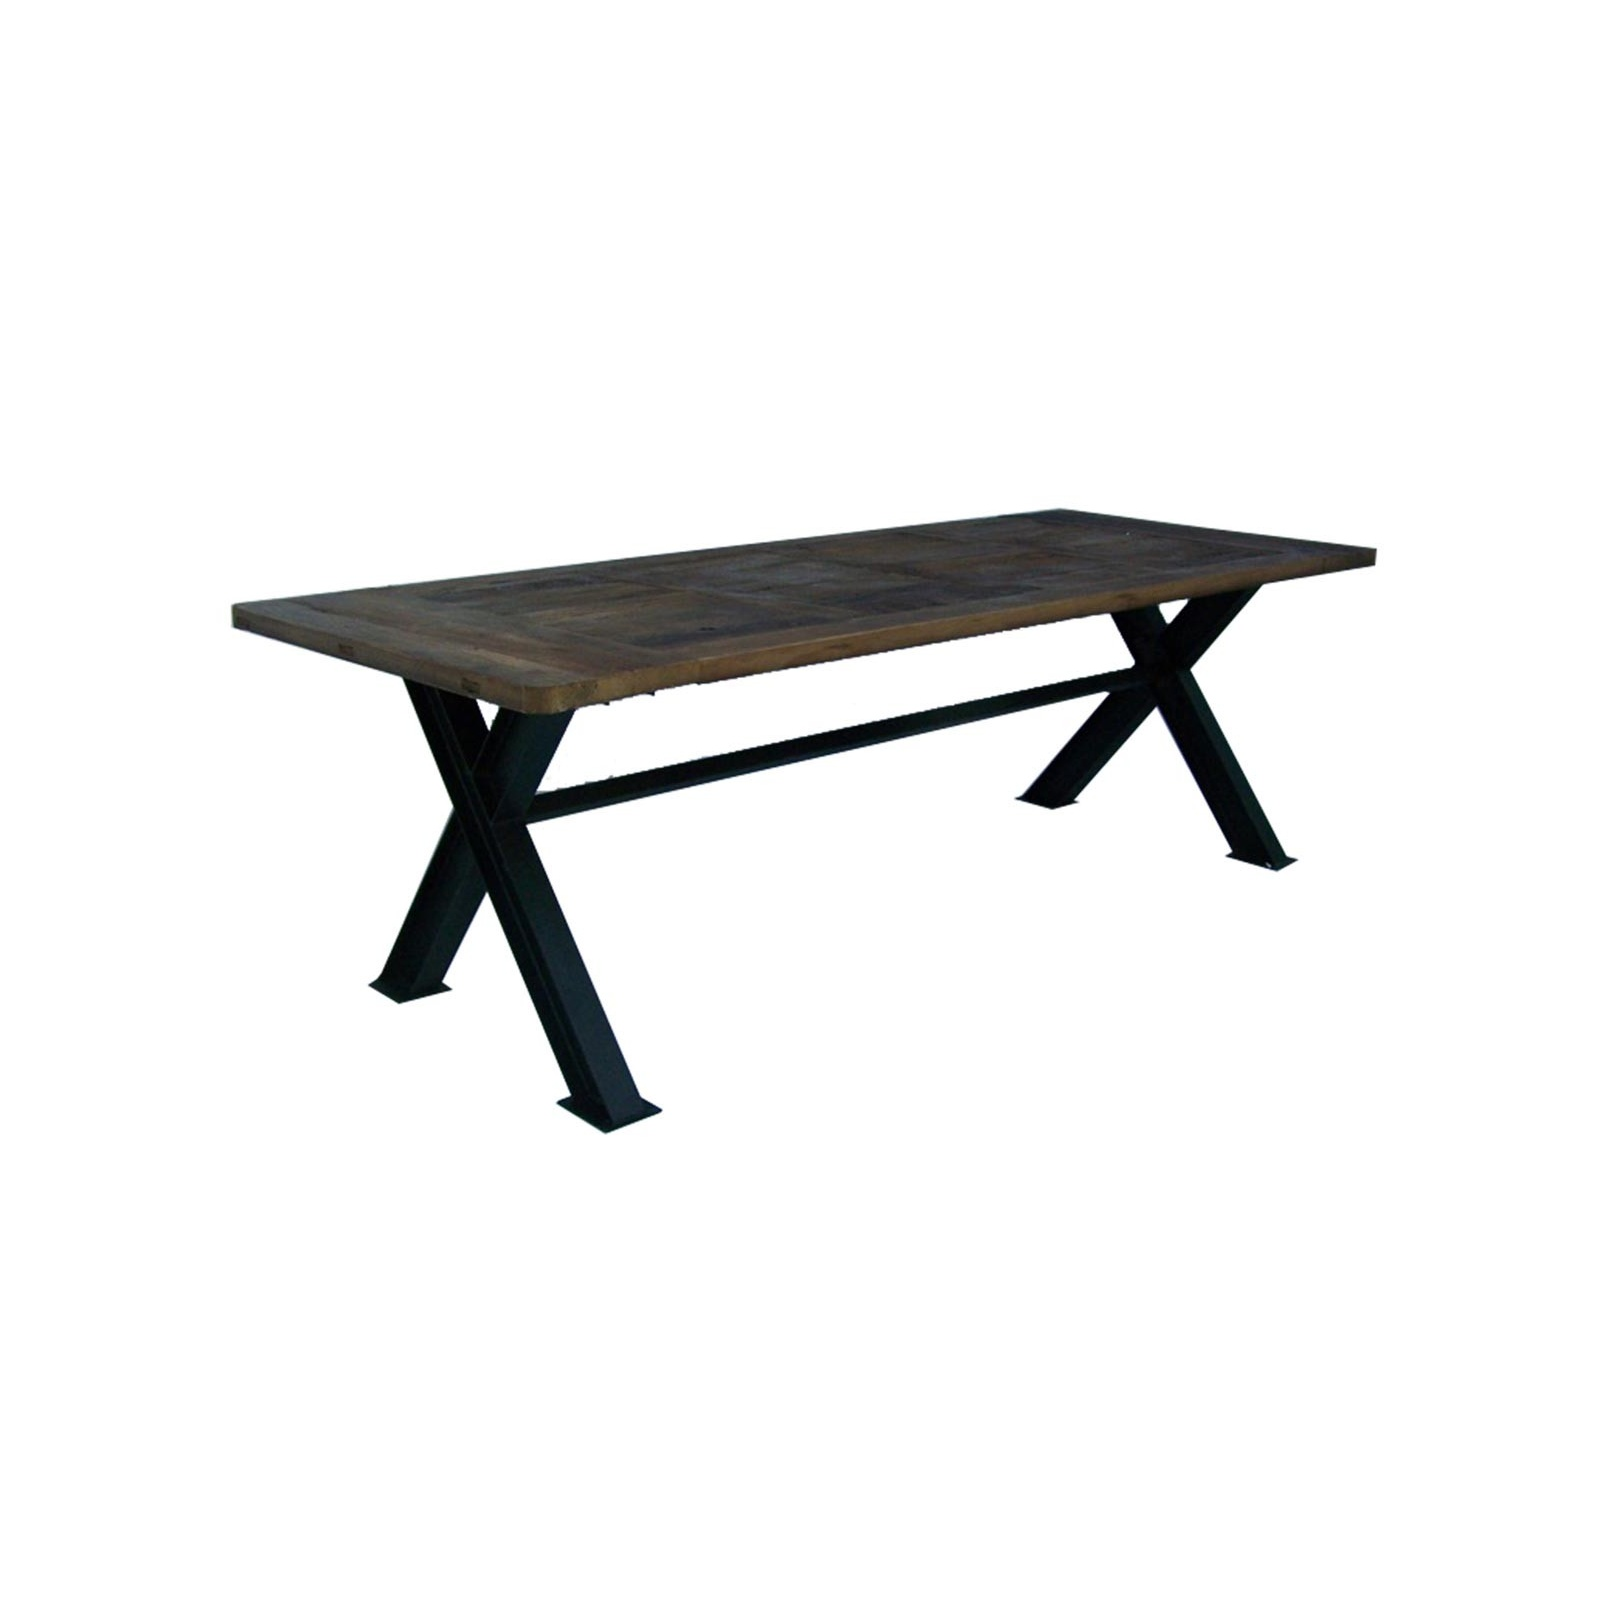 Grande table de repas jp2b d coration for Grande table murale rabattable